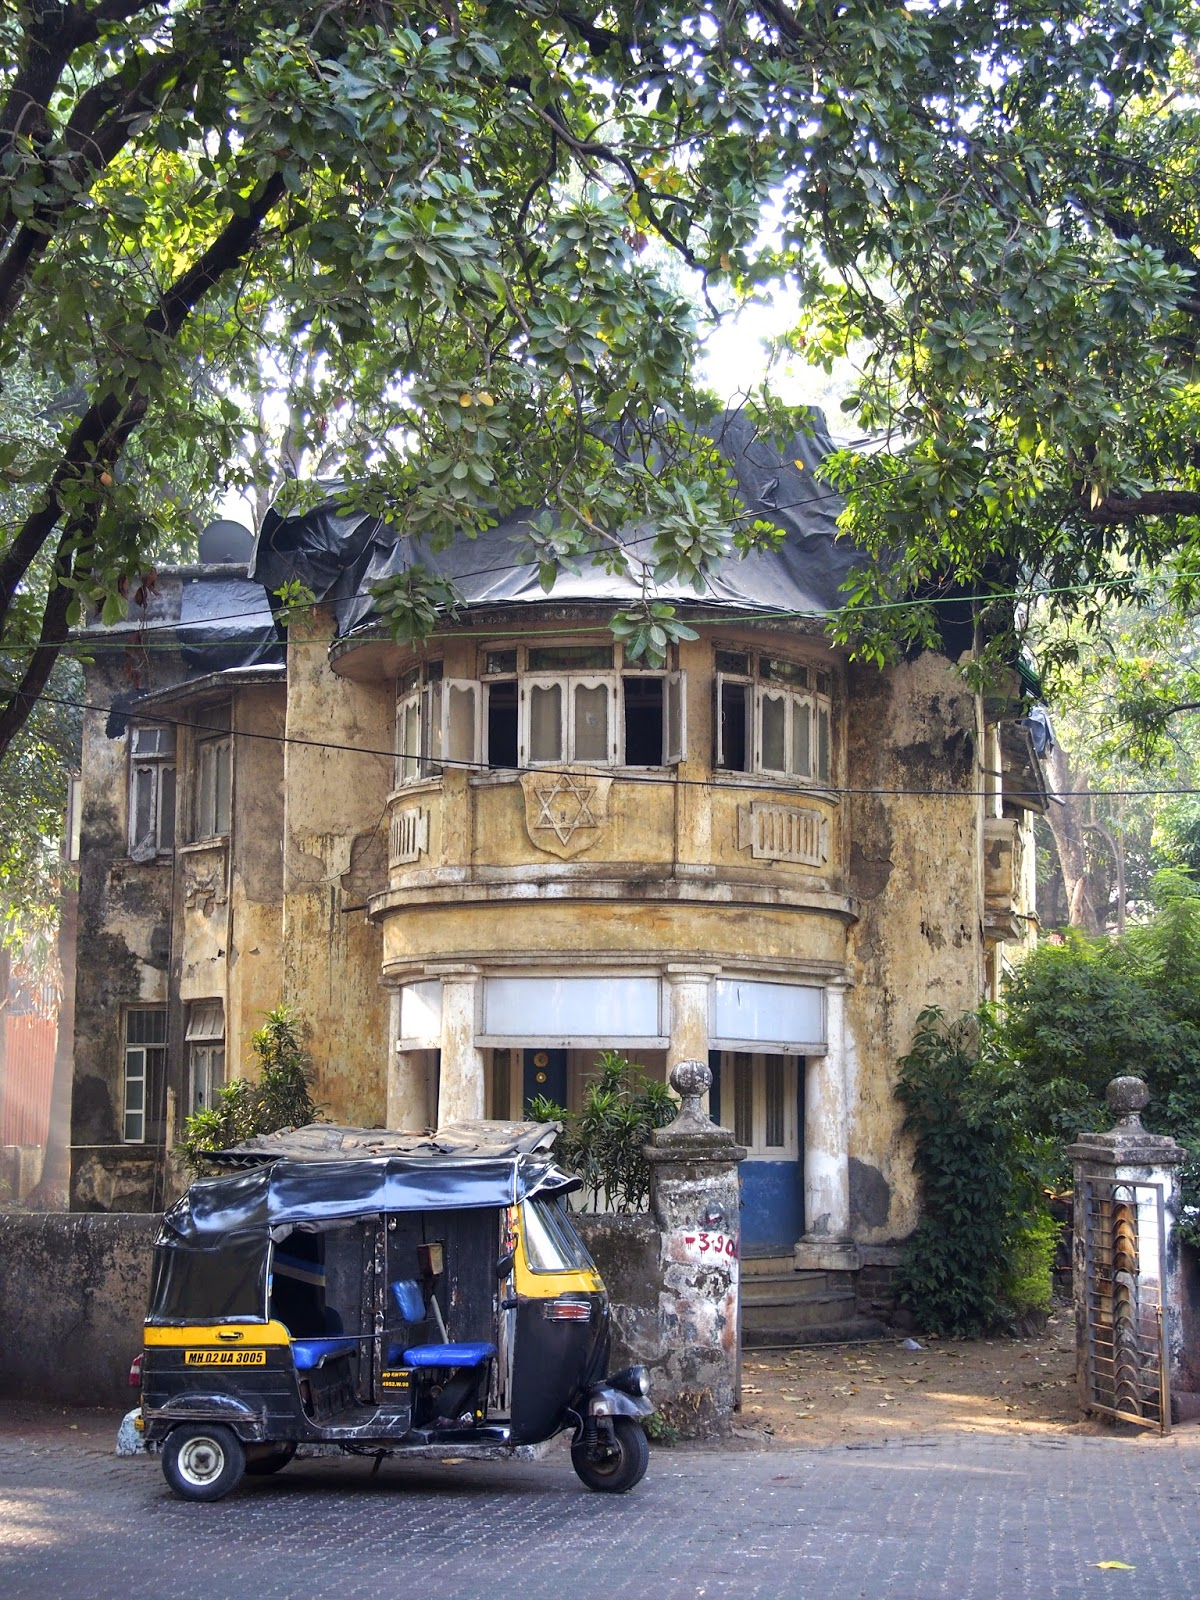 India bungalows of bandra bombay 39 s vanishing heritage minor sights